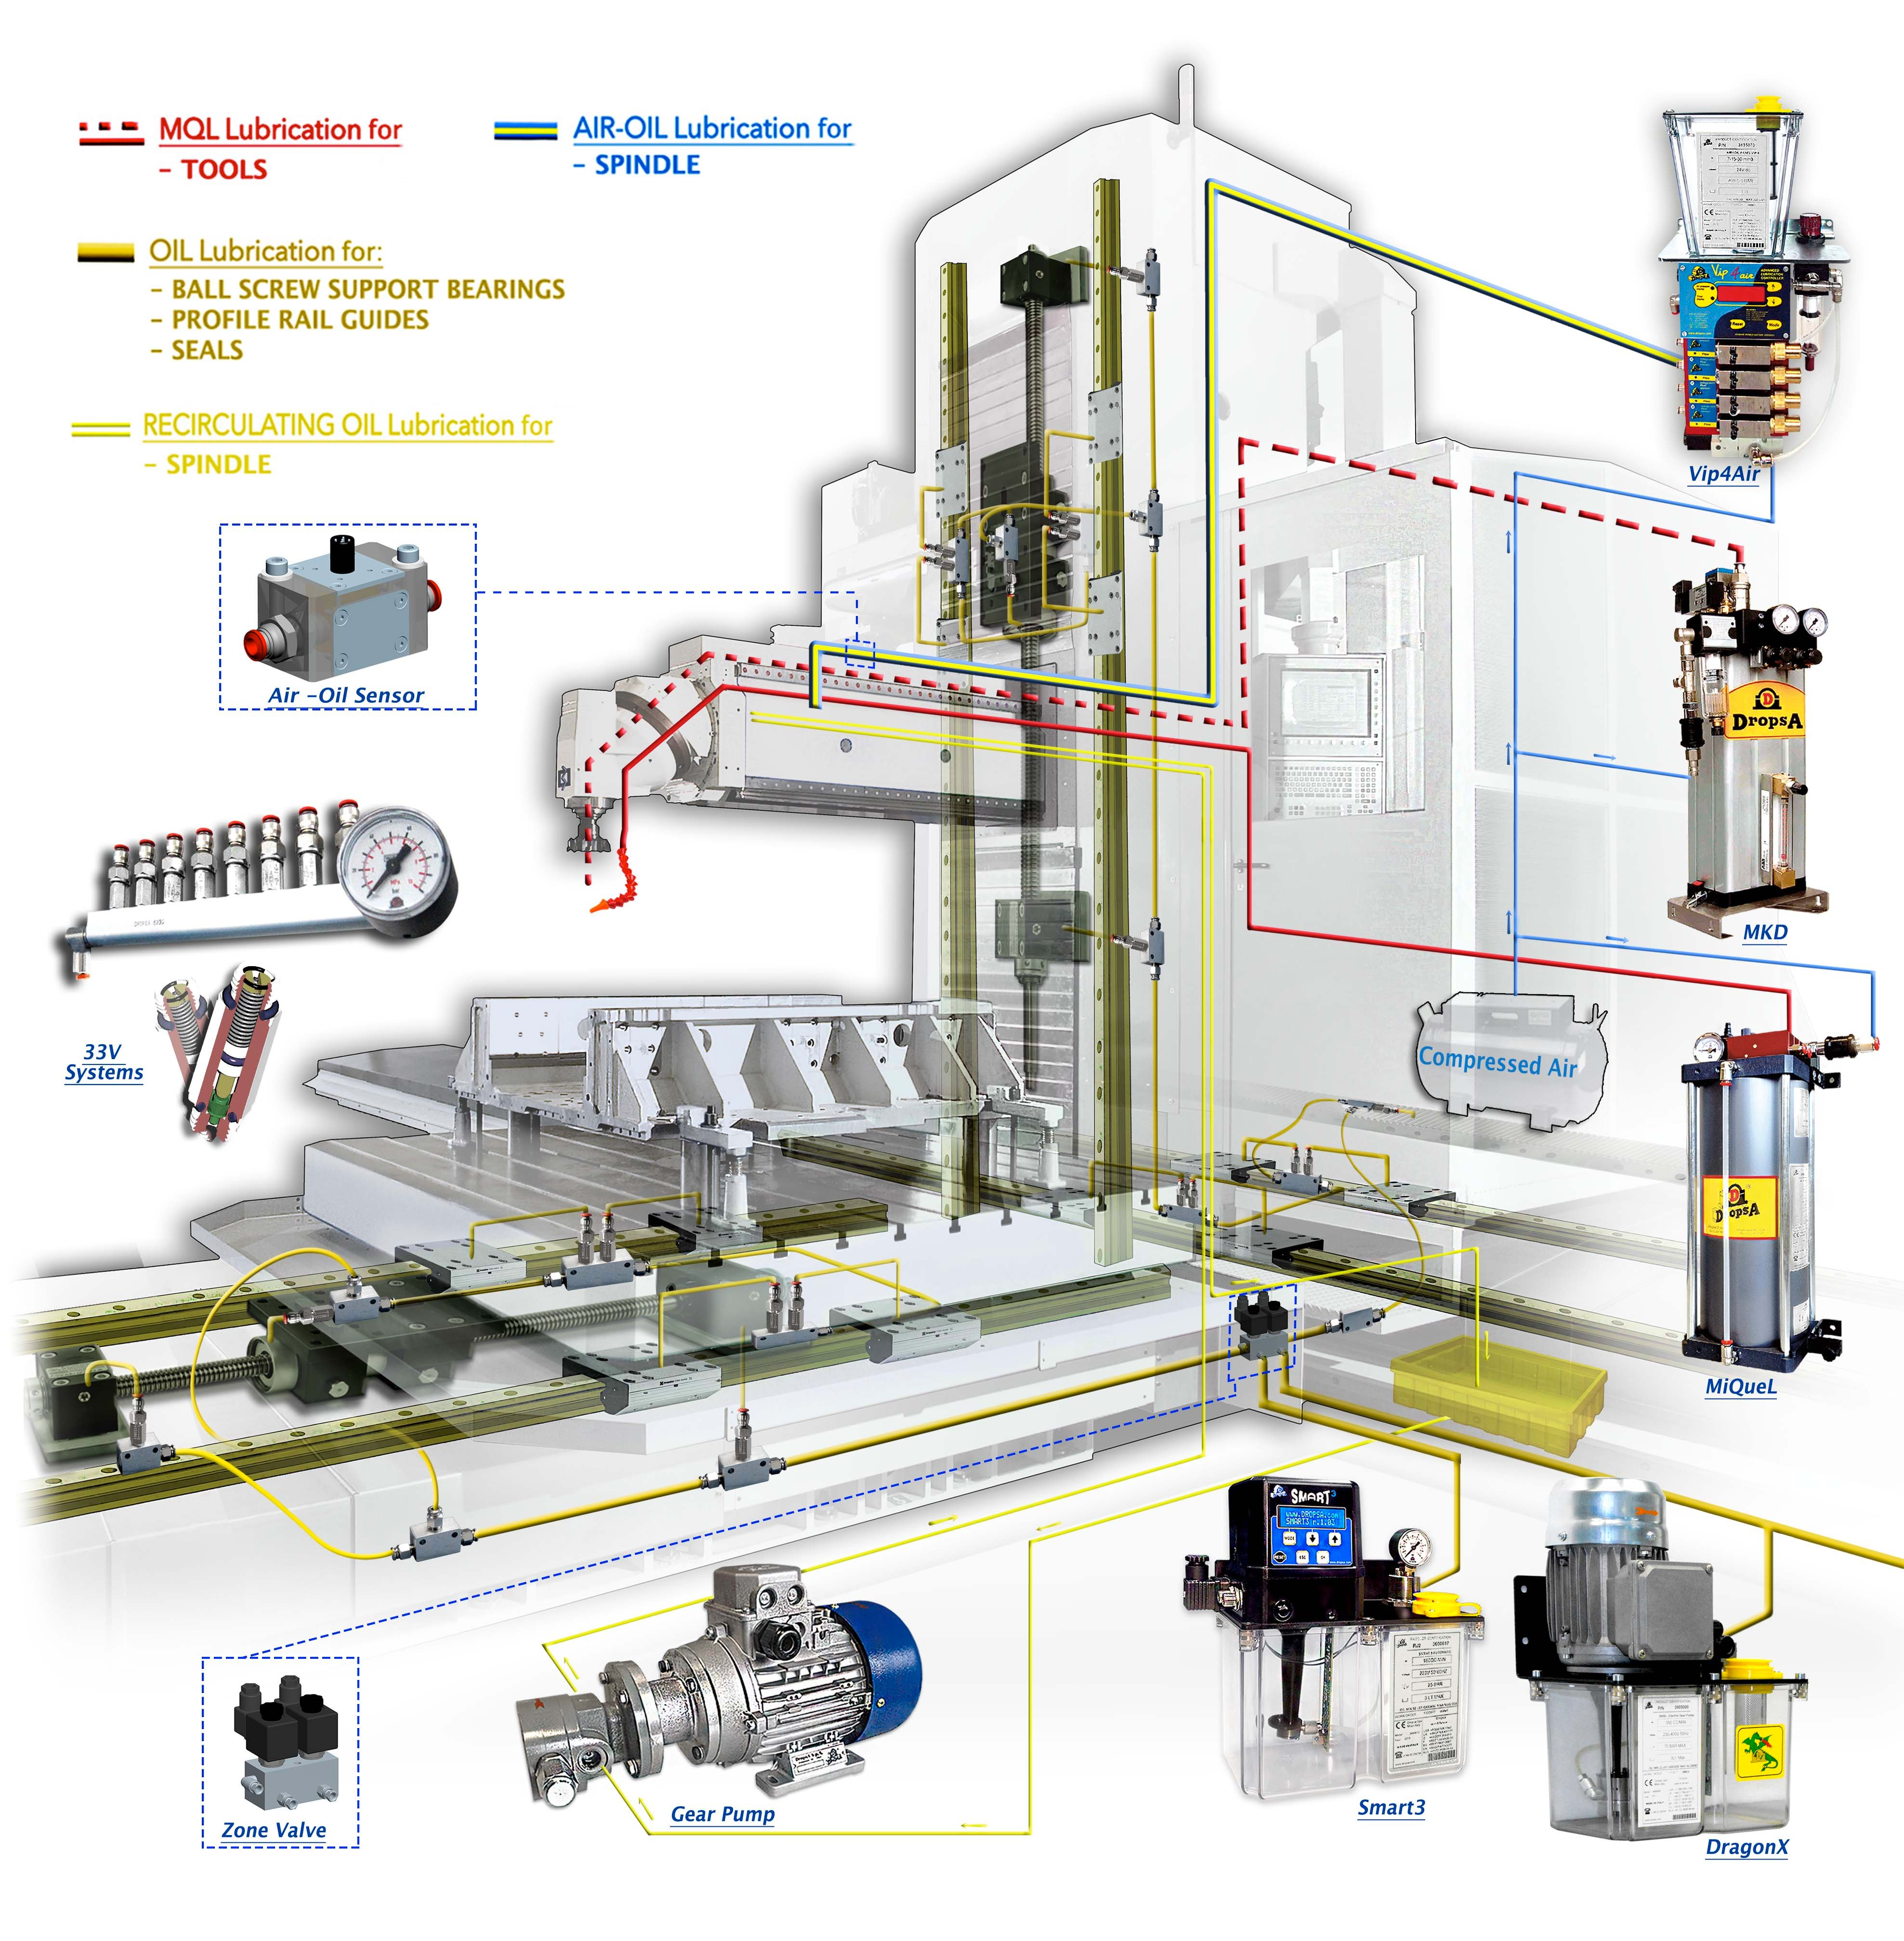 OIL and AIR-OIL Lubrication system for machine tools - Dropsa